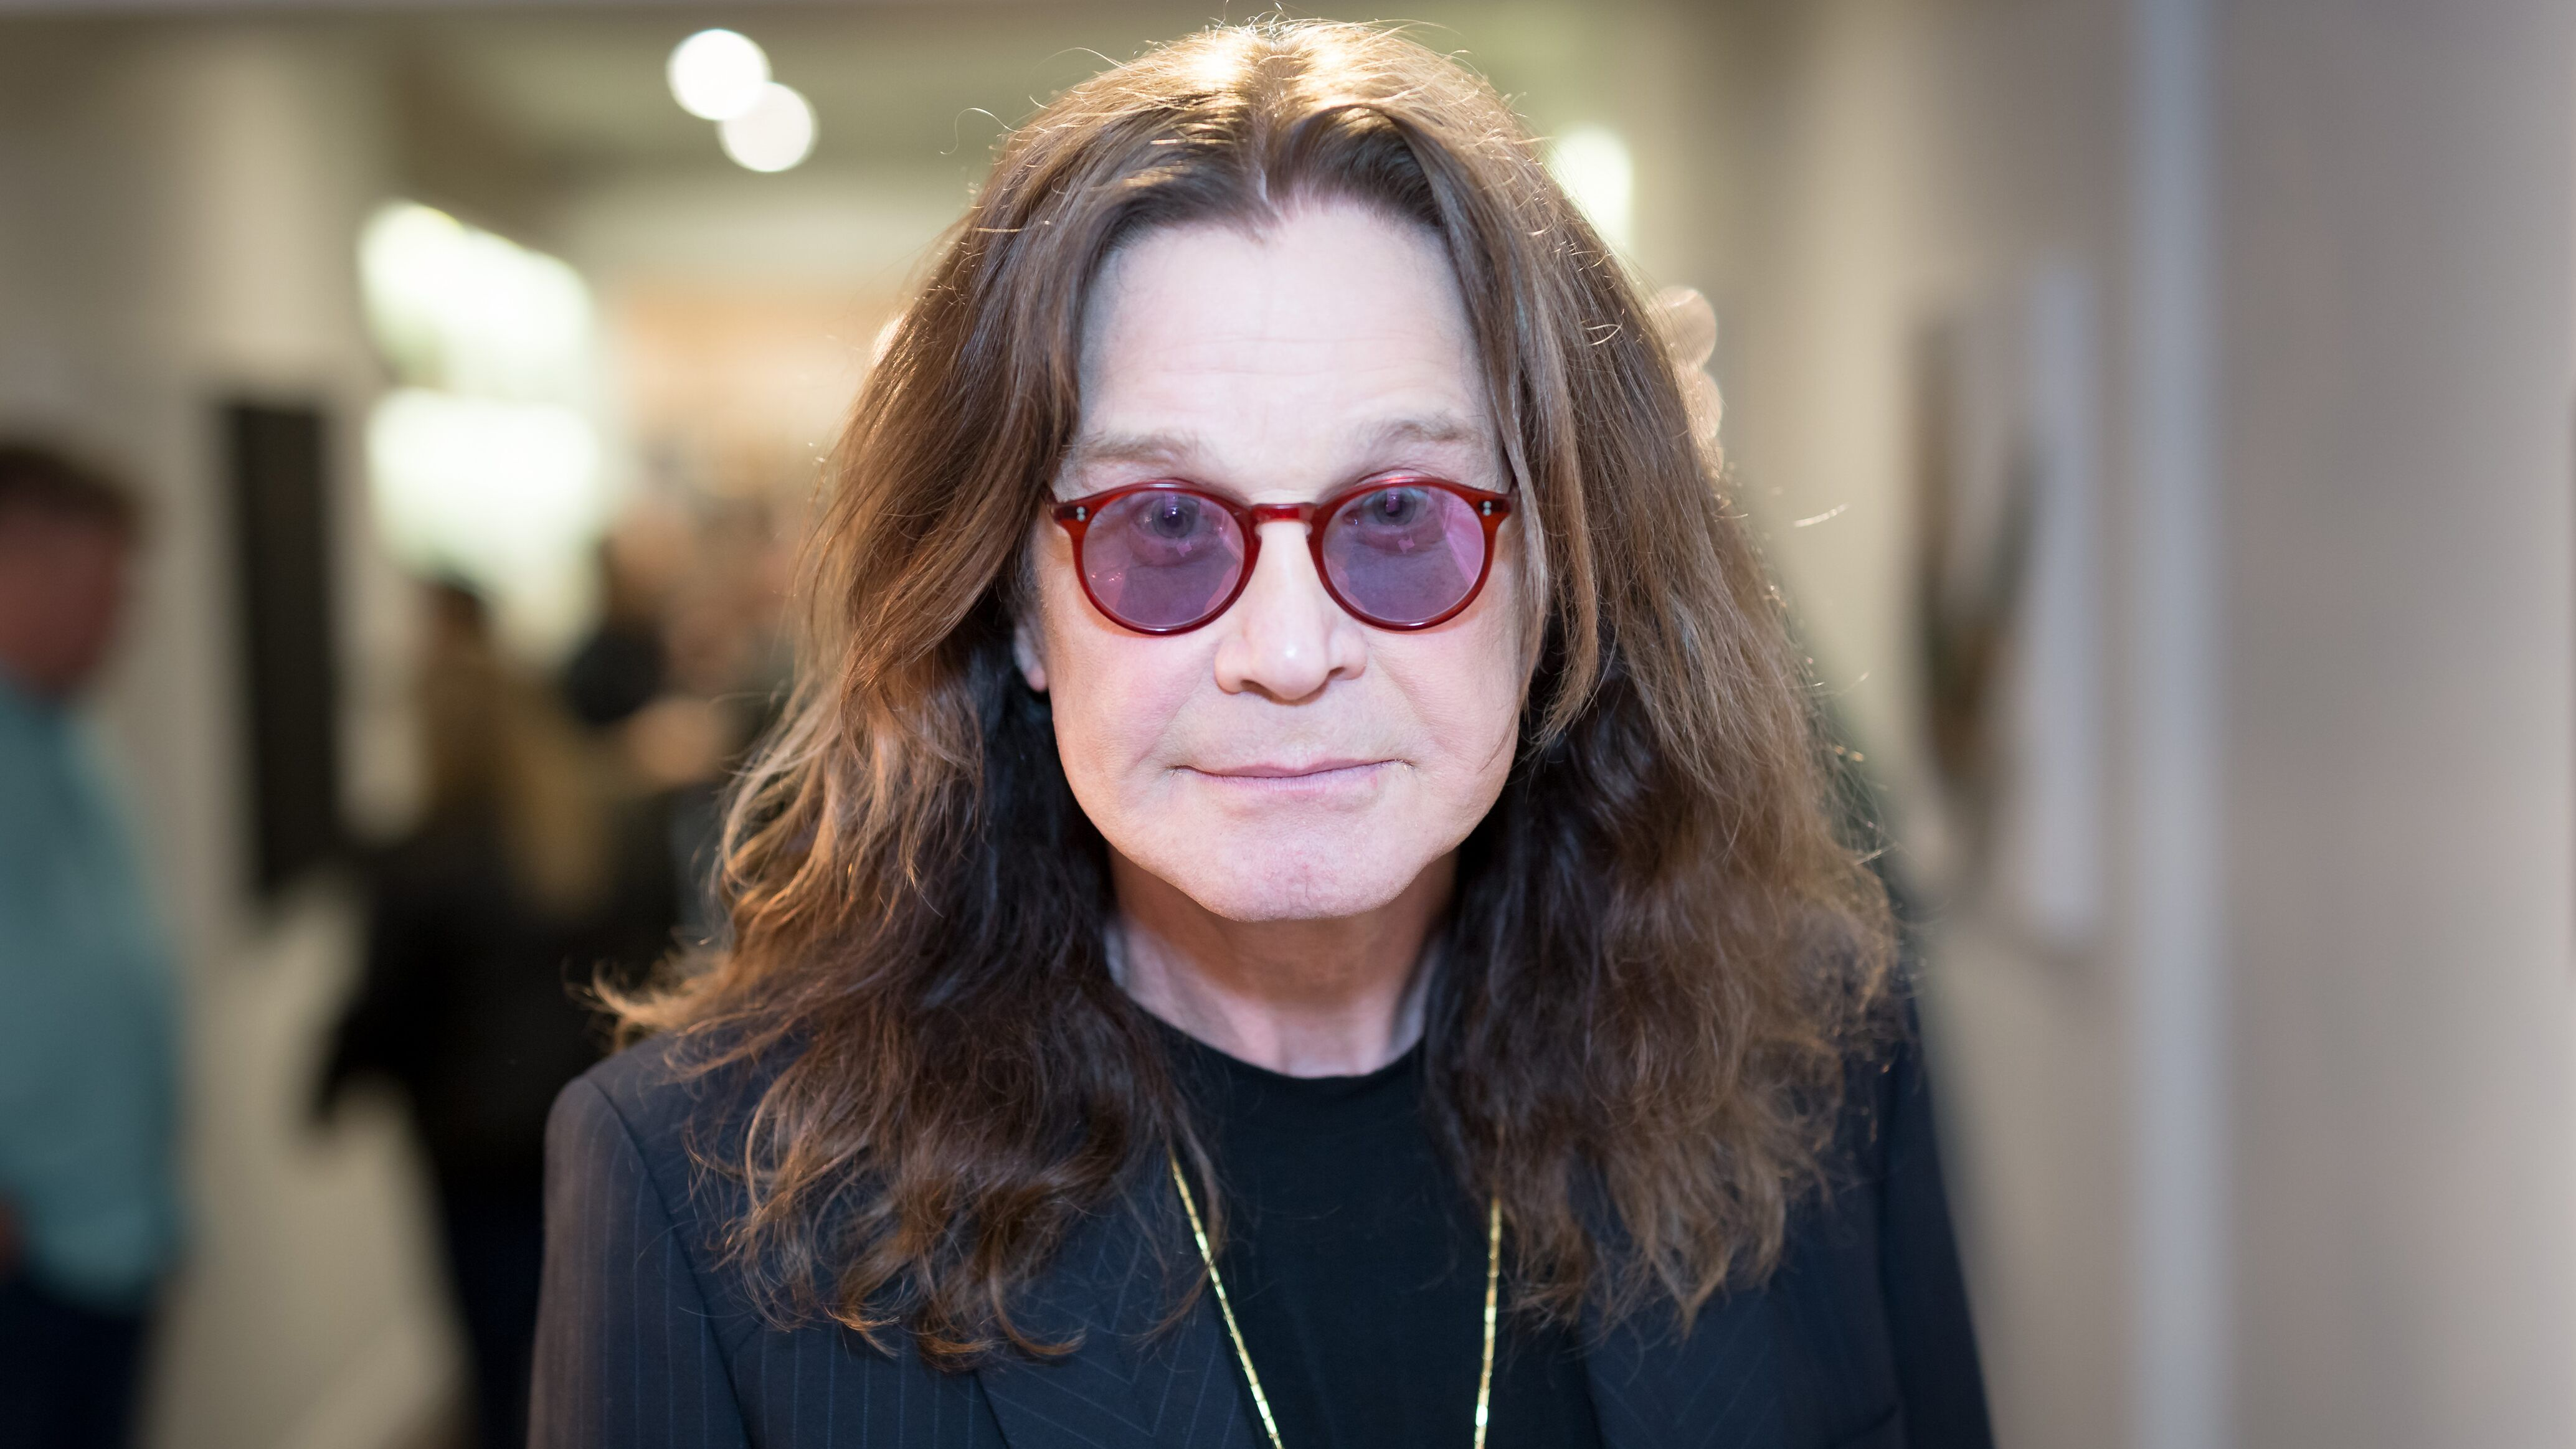 Ozzy Osbourne to present at 2020 Grammys after sharing